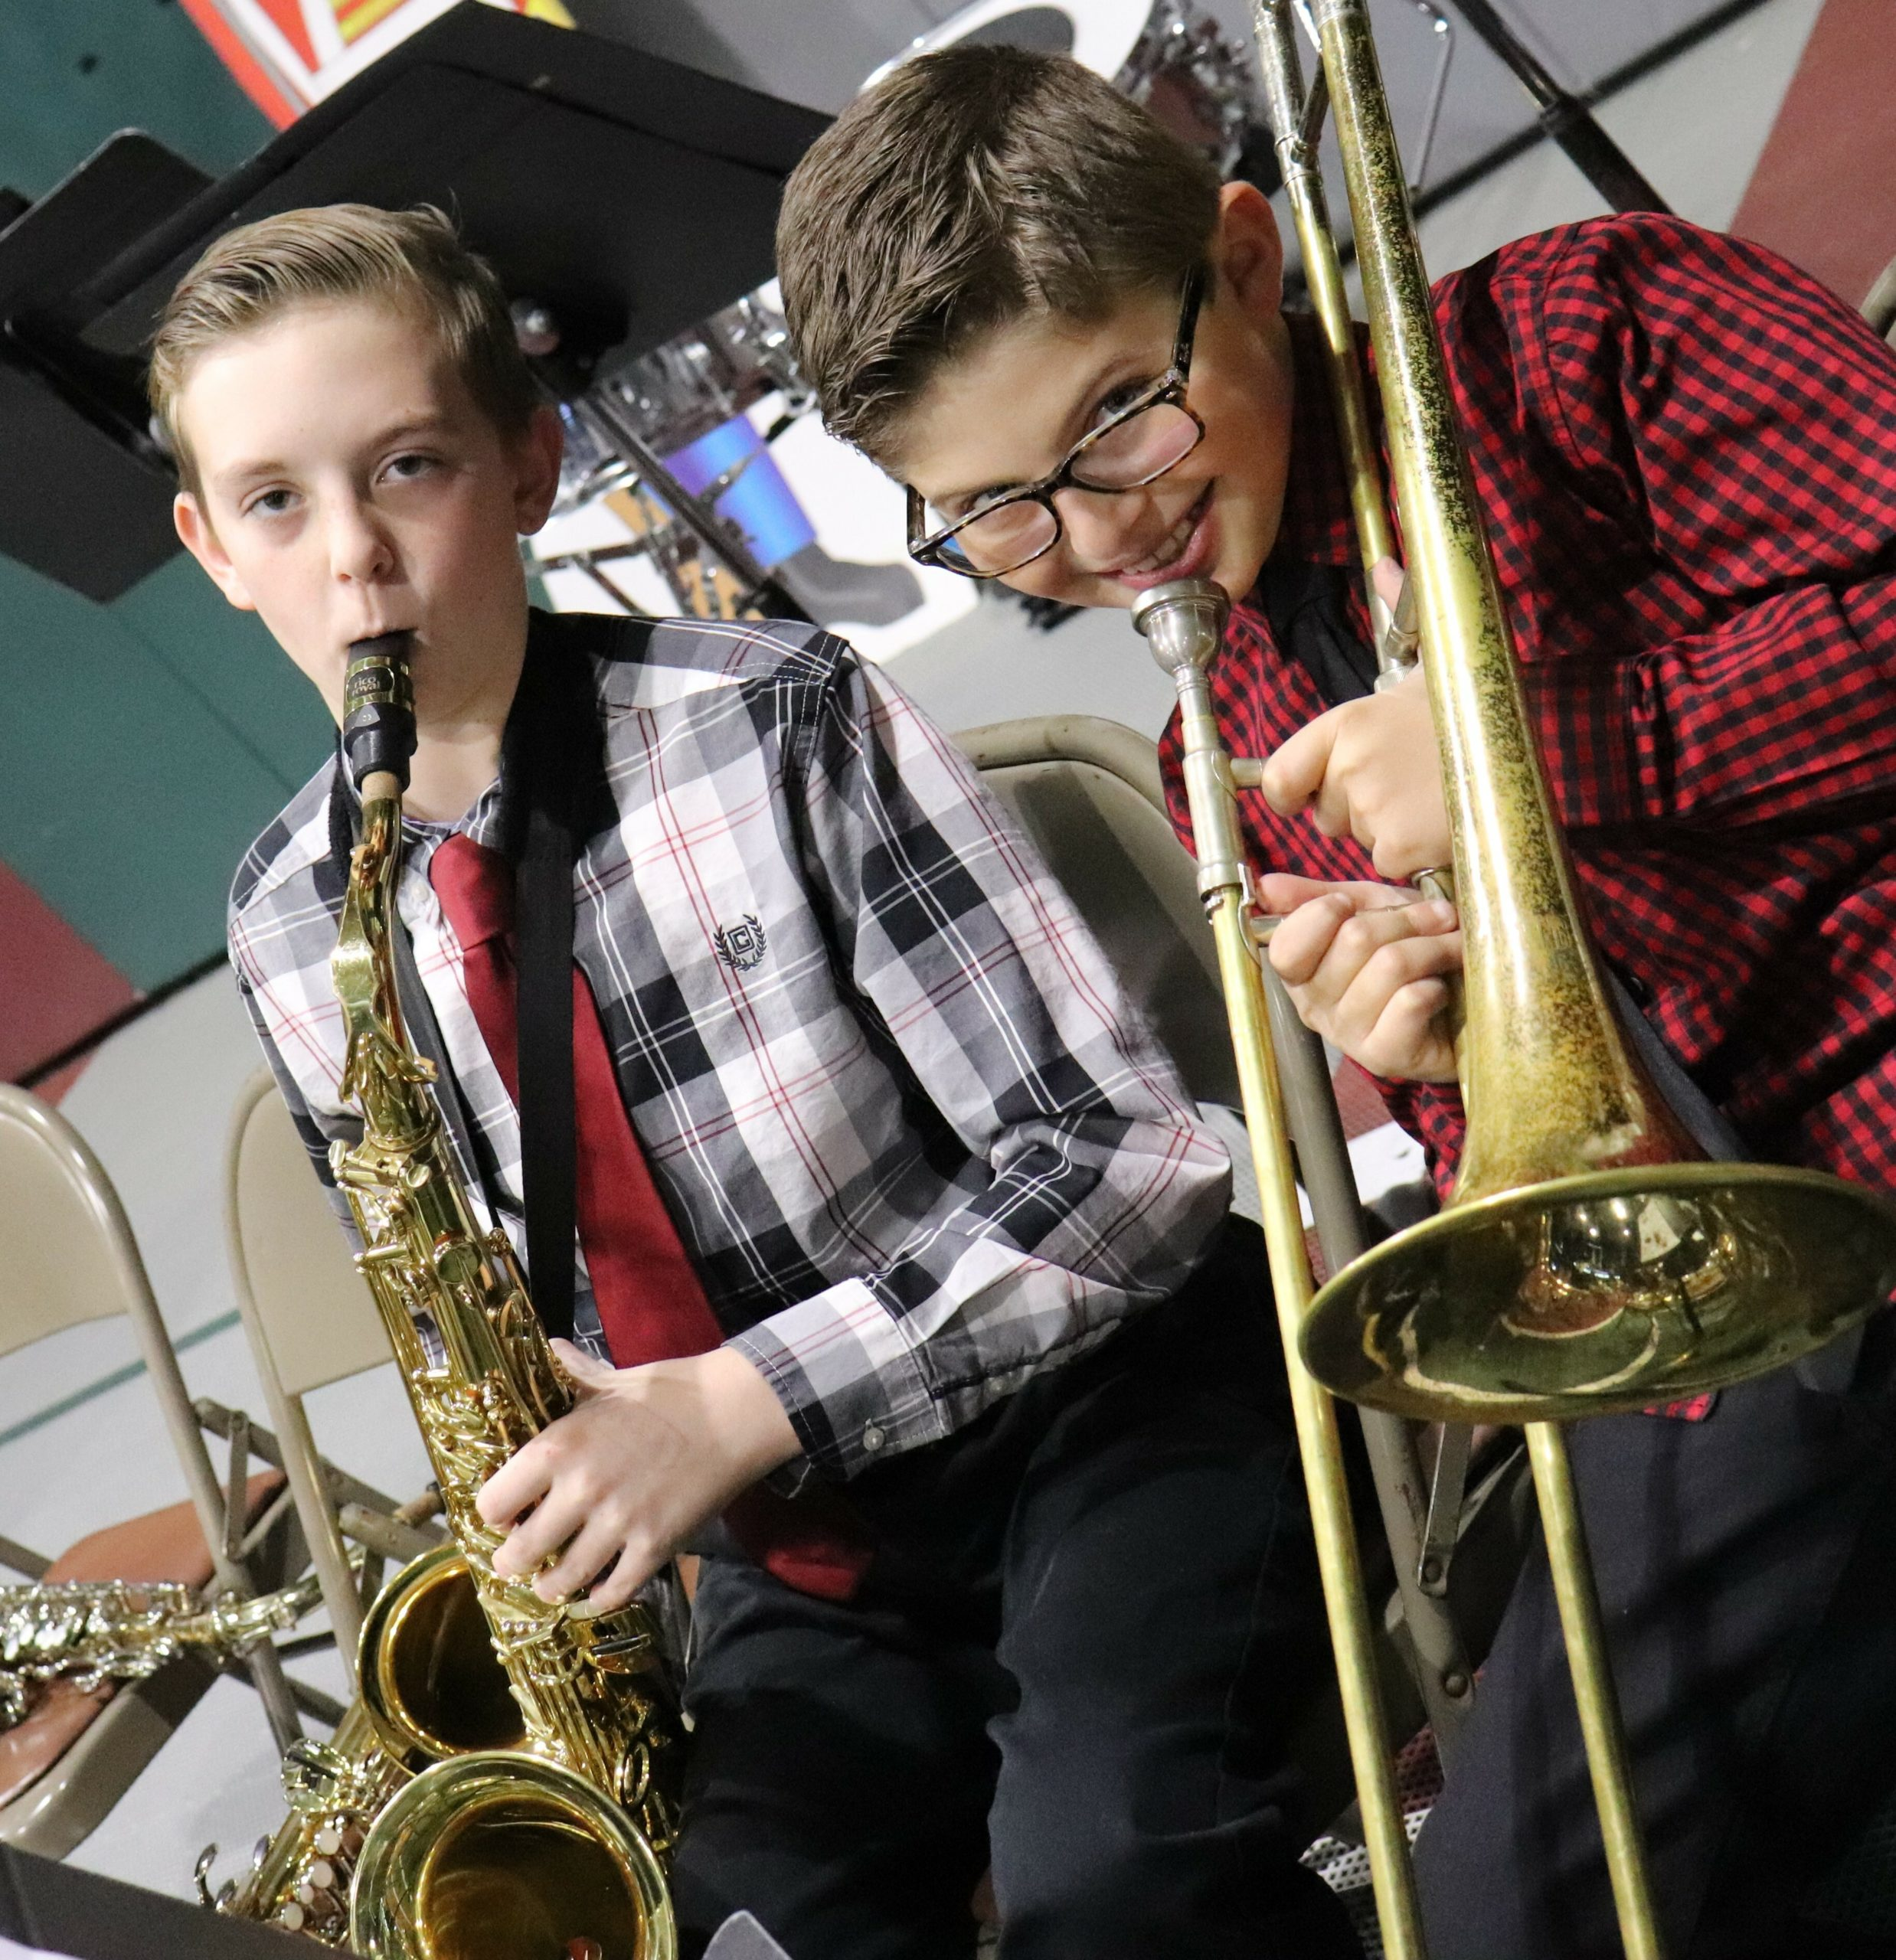 Raynor Country Day School hosted its annual Winter Concert for students in fourth- through sixth-grade. During the event, the senior band, jazz band, senior chorus, the ukulele ensemble and piano soloists performed. Parker Roppelt and George Nikolopoulos warming up for the performance.